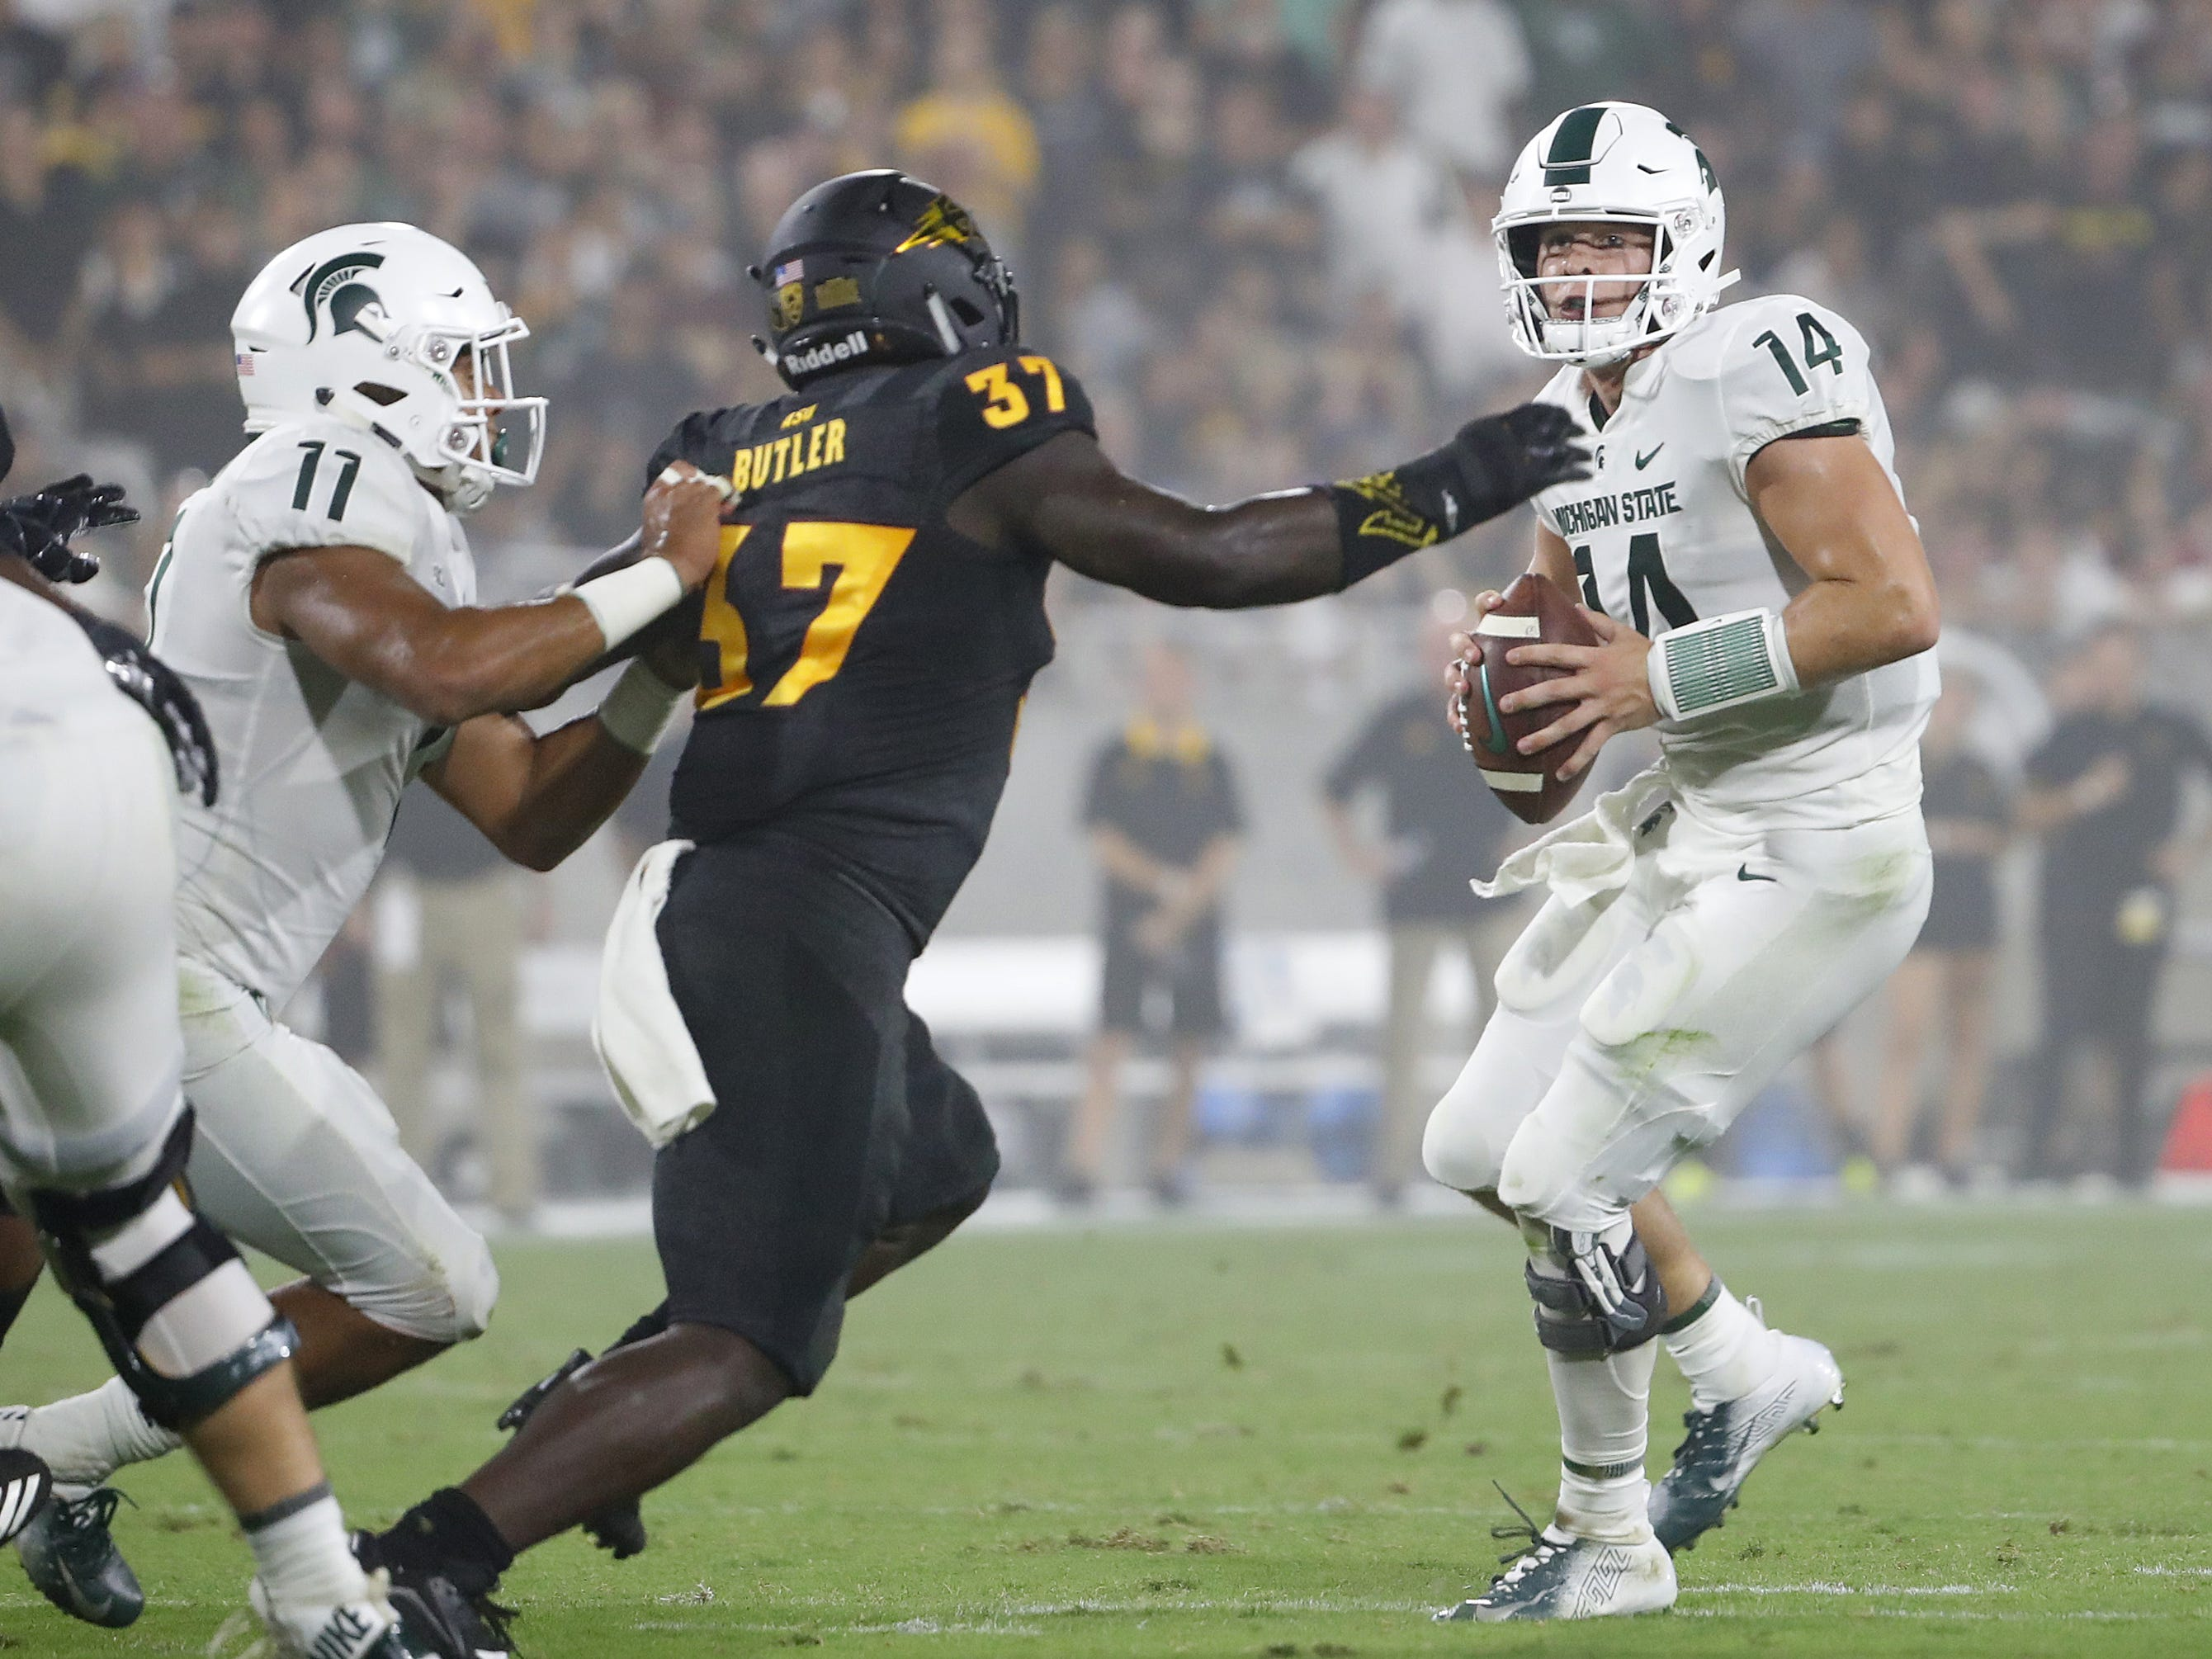 Arizona State Sun Devils defensive back Darien Butler (37) forces a throw from Michigan State's Brian Lewerke (14) resulting in an interception during the second quarter at Sun Devil Stadium in Tempe, Ariz. on Sept. 8, 2018.